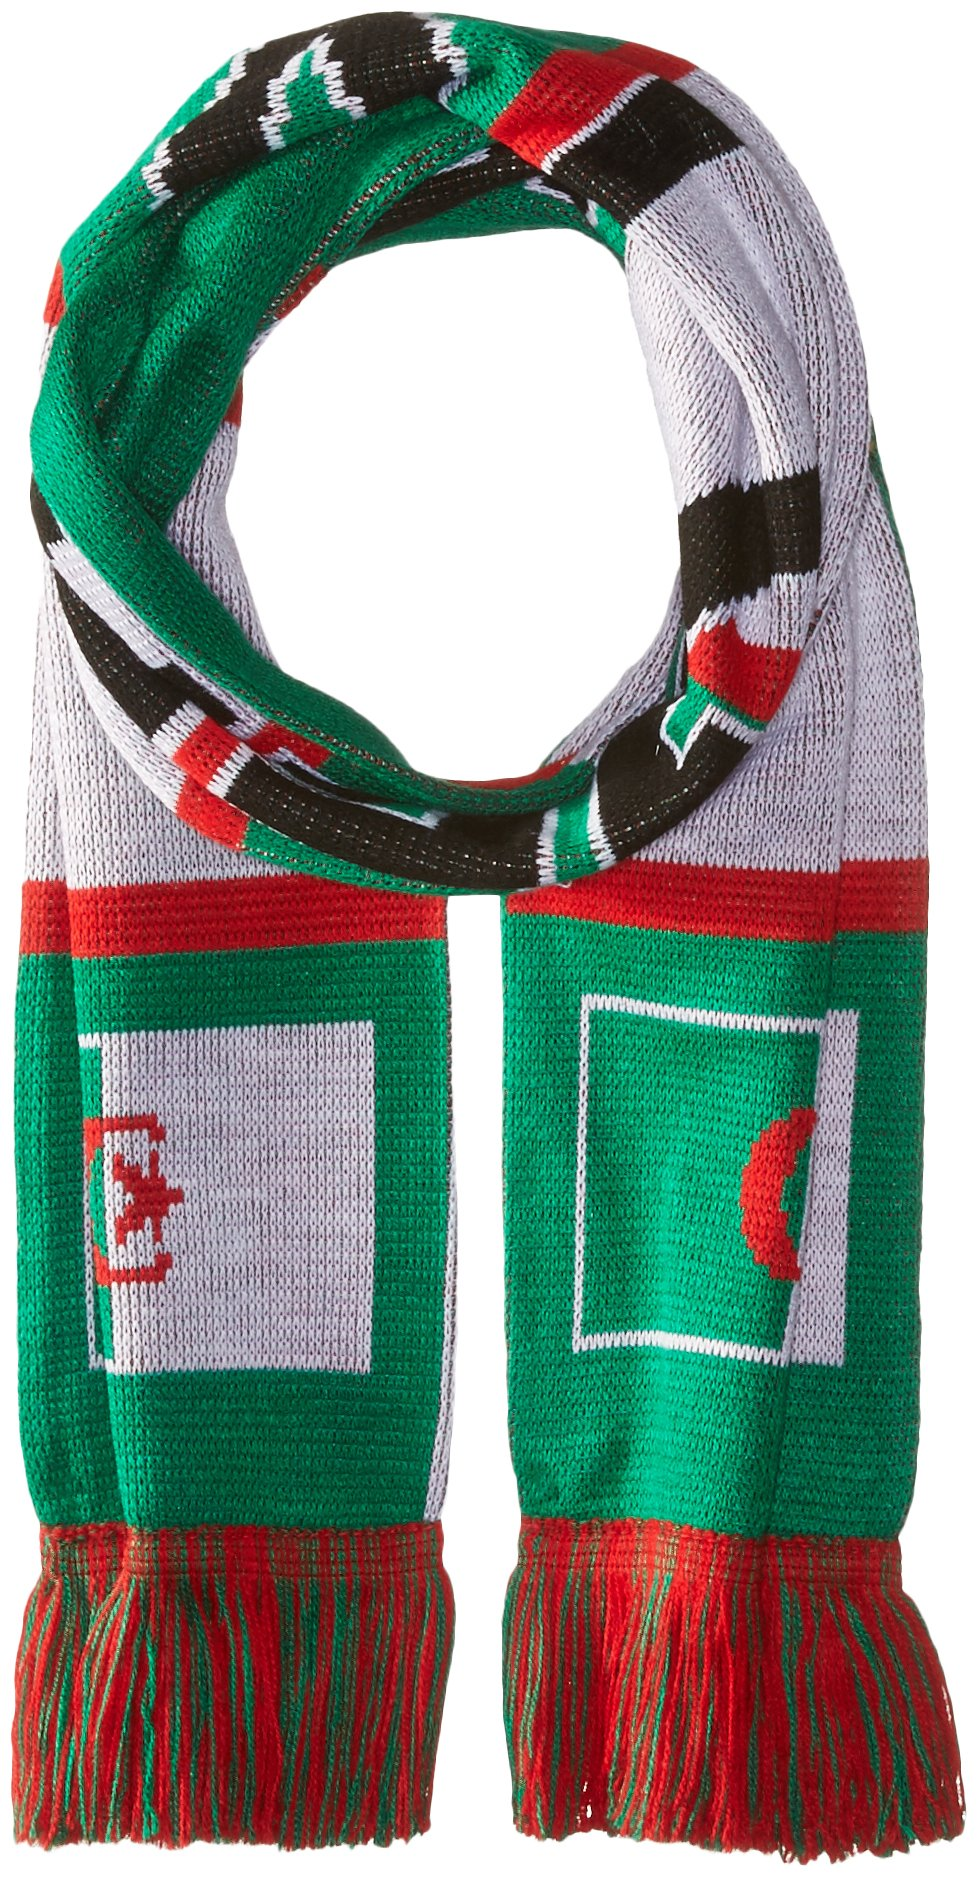 RUFFNECK National Soccer Team Algeria Jacquard Knit Scarf, One Size, Green/White/Red